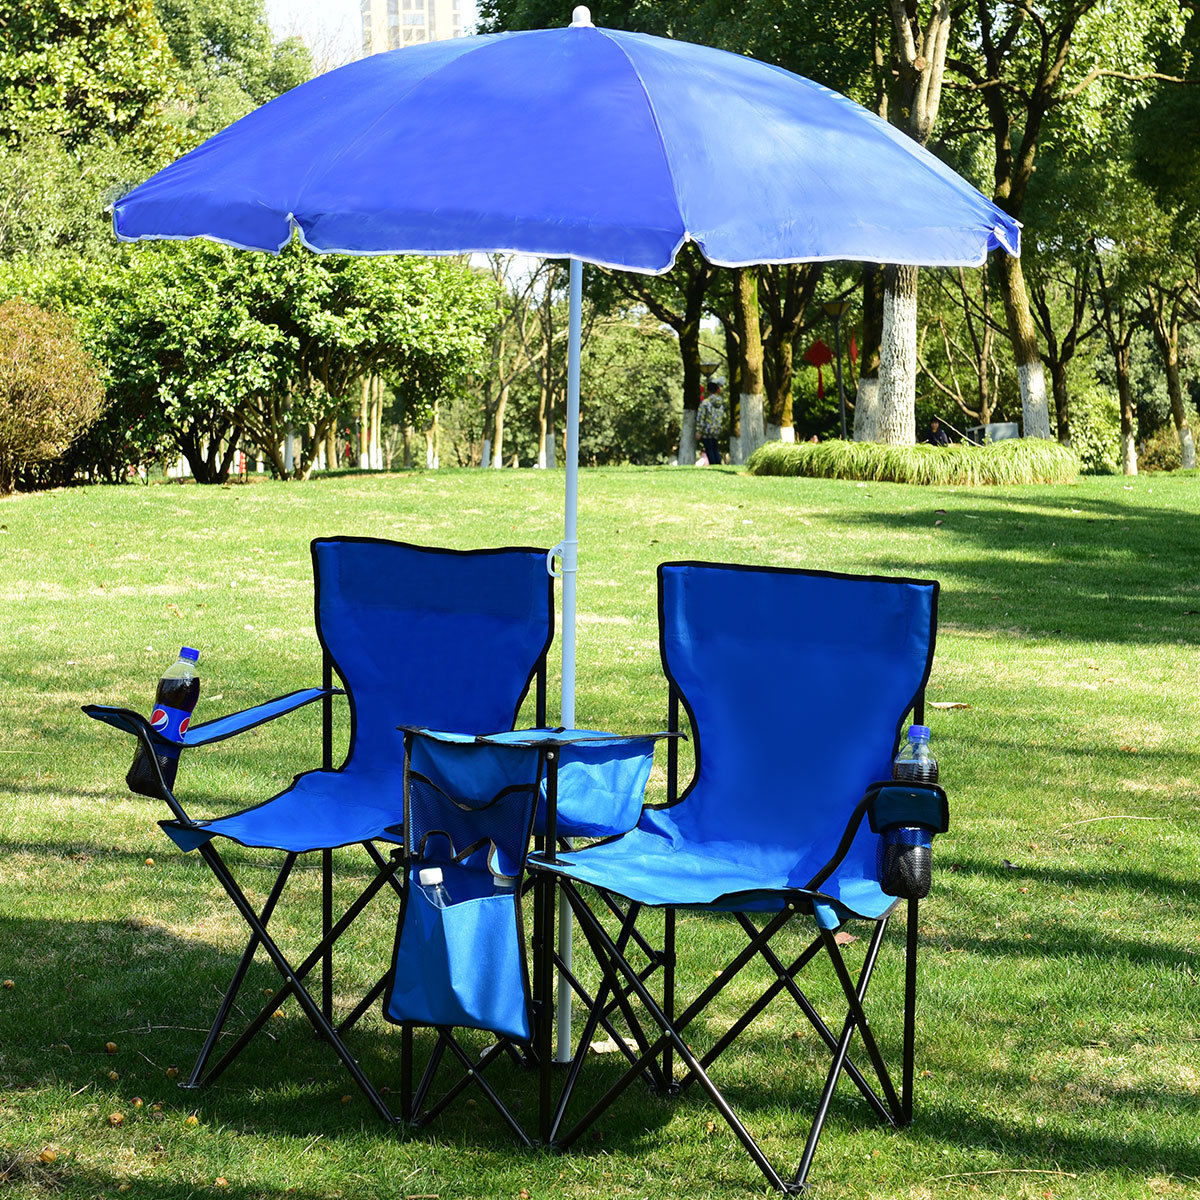 umbrella chair walmart oxo tot seedling high cushion costway portable folding picnic double w table cooler beach camping com